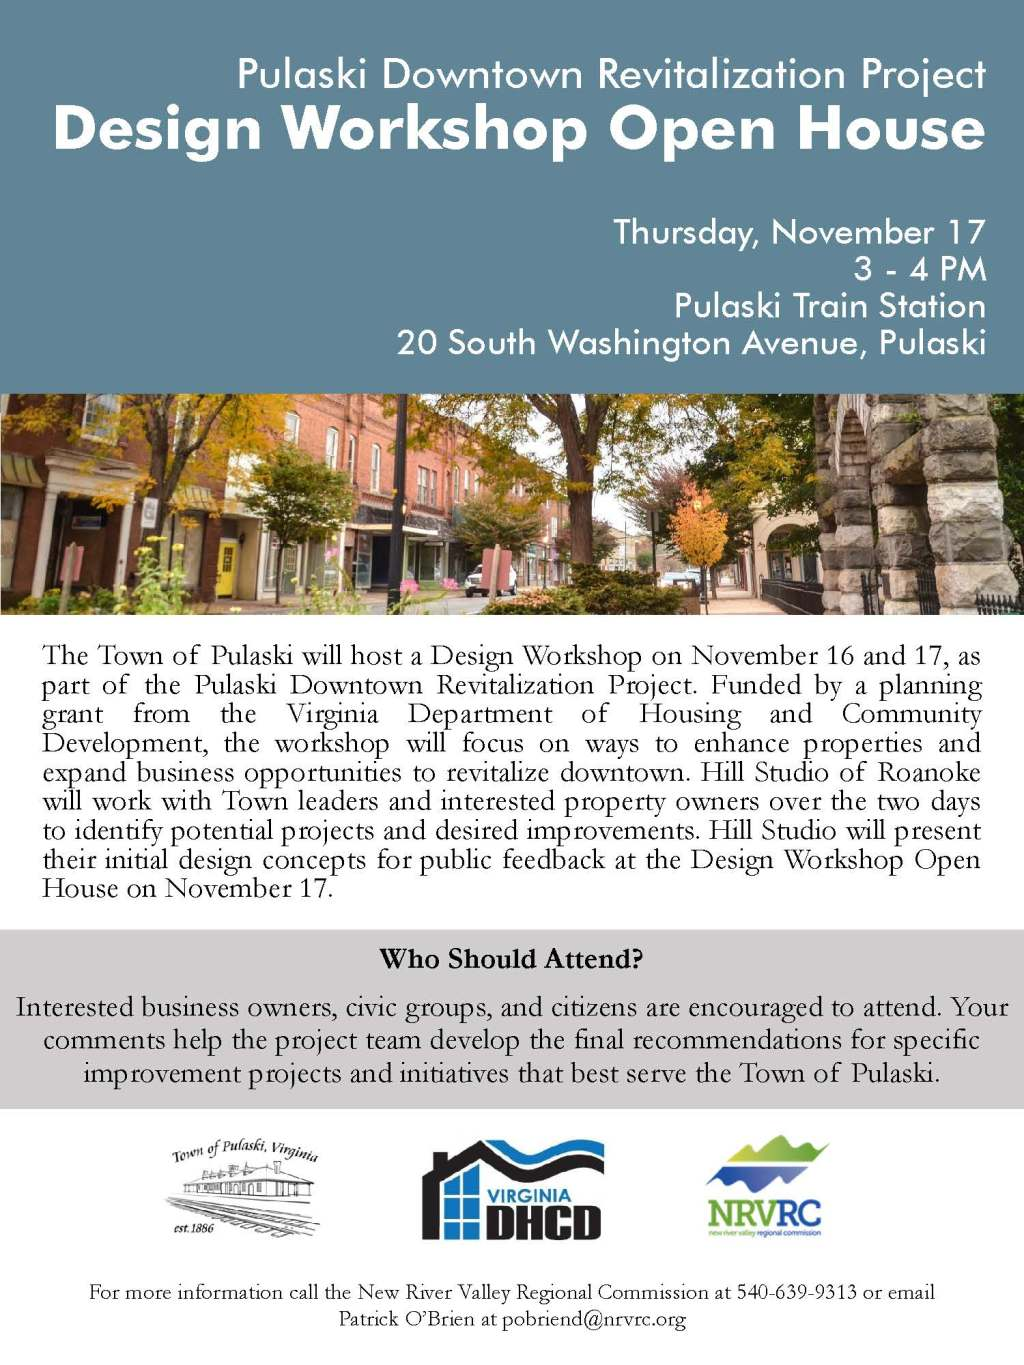 pulaski-downtown-revitalization-project-flyer